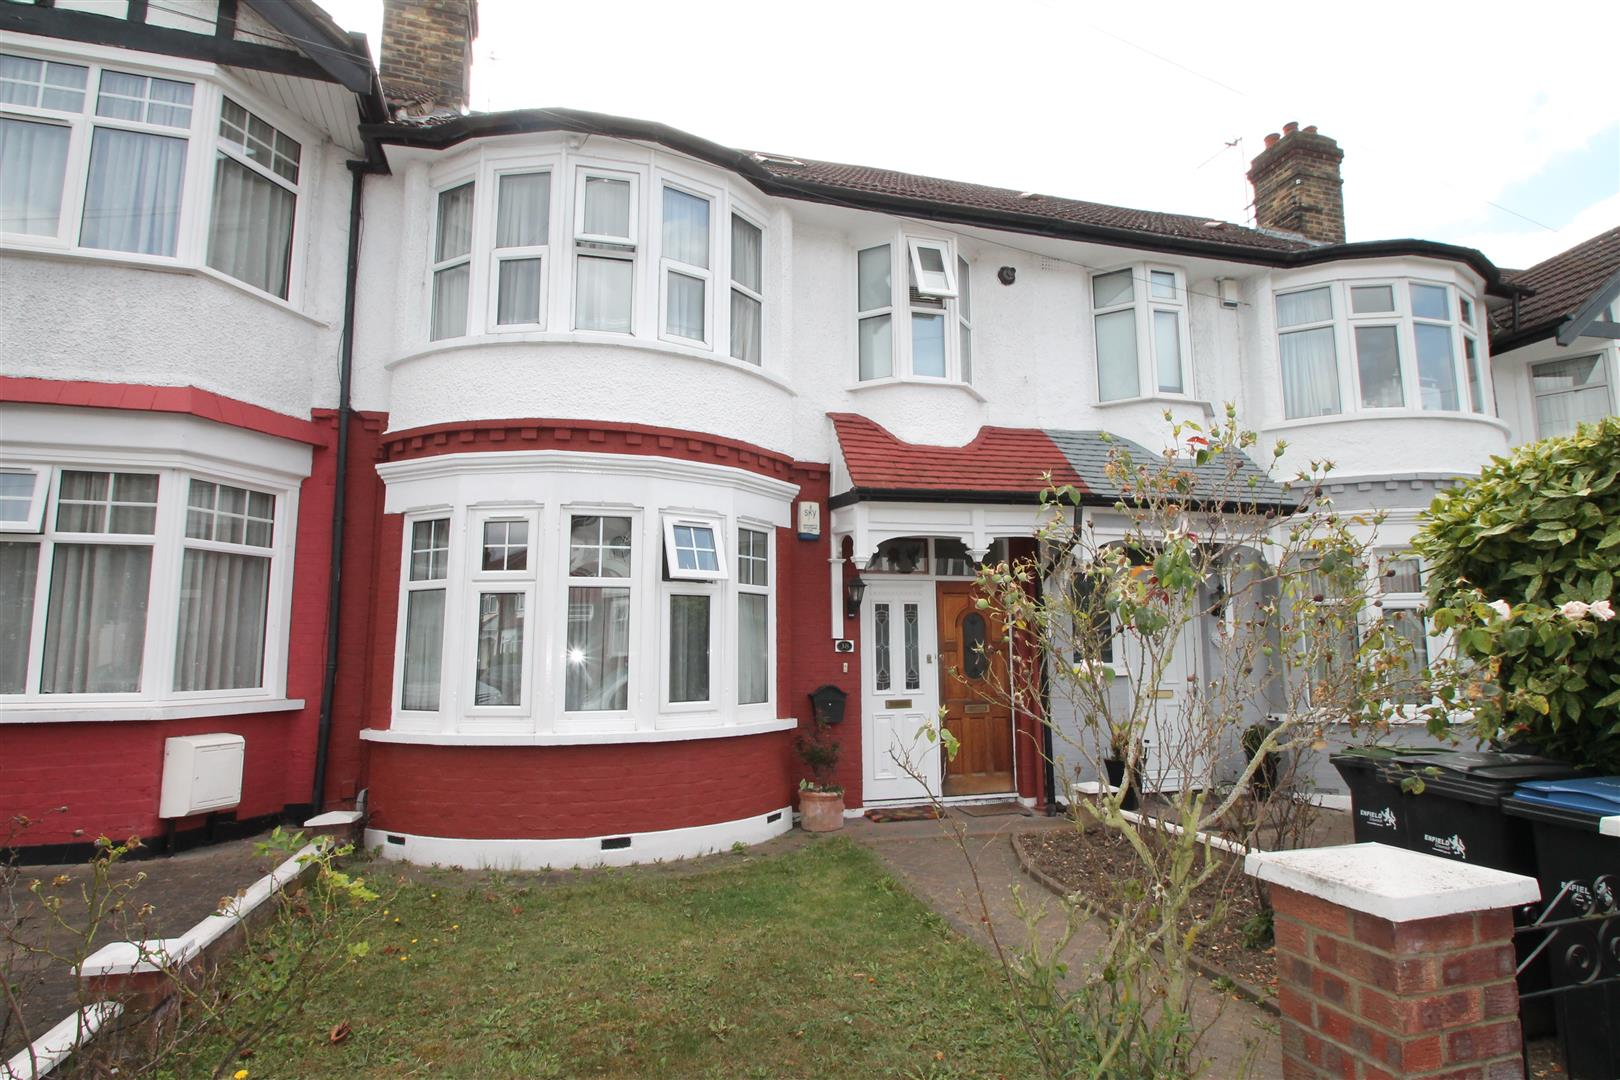 2 Bedrooms Flat for sale in Hamilton Crescent, Palmers Green, London N13